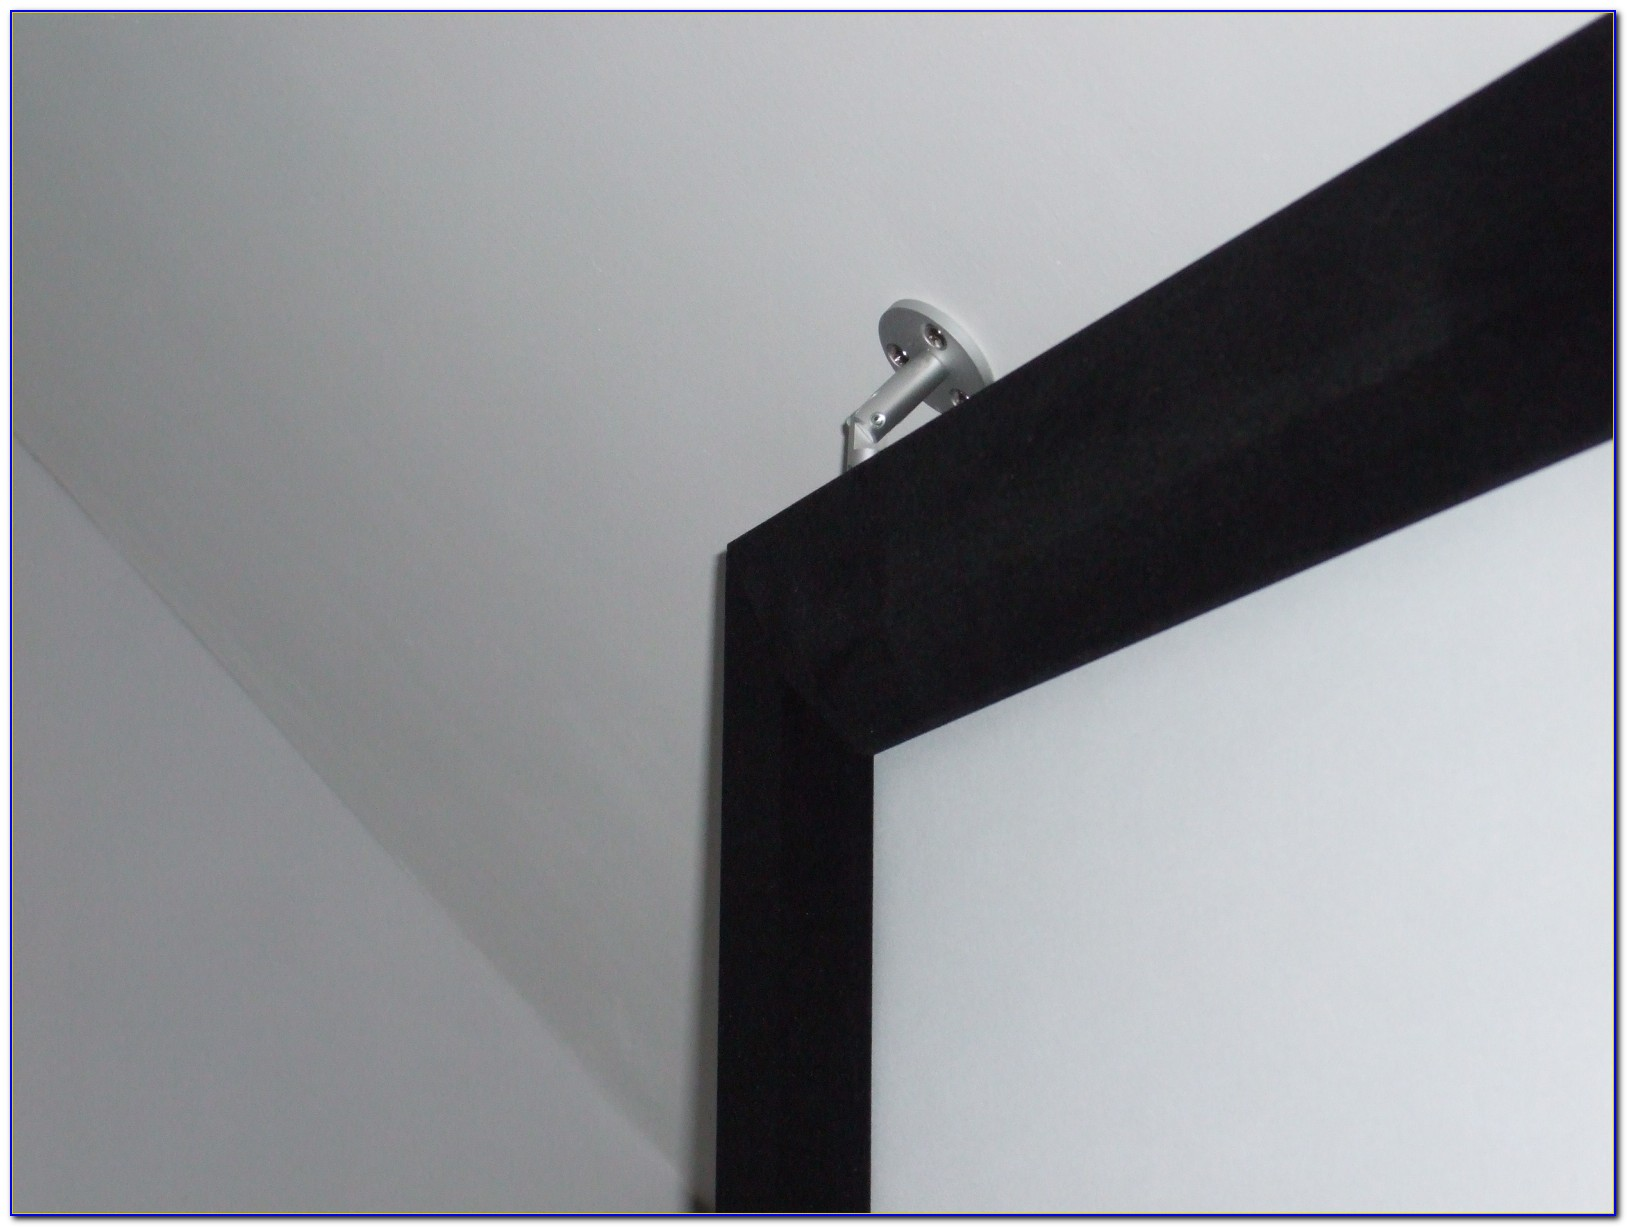 Hanging A Projector Screen From A Drop Ceiling